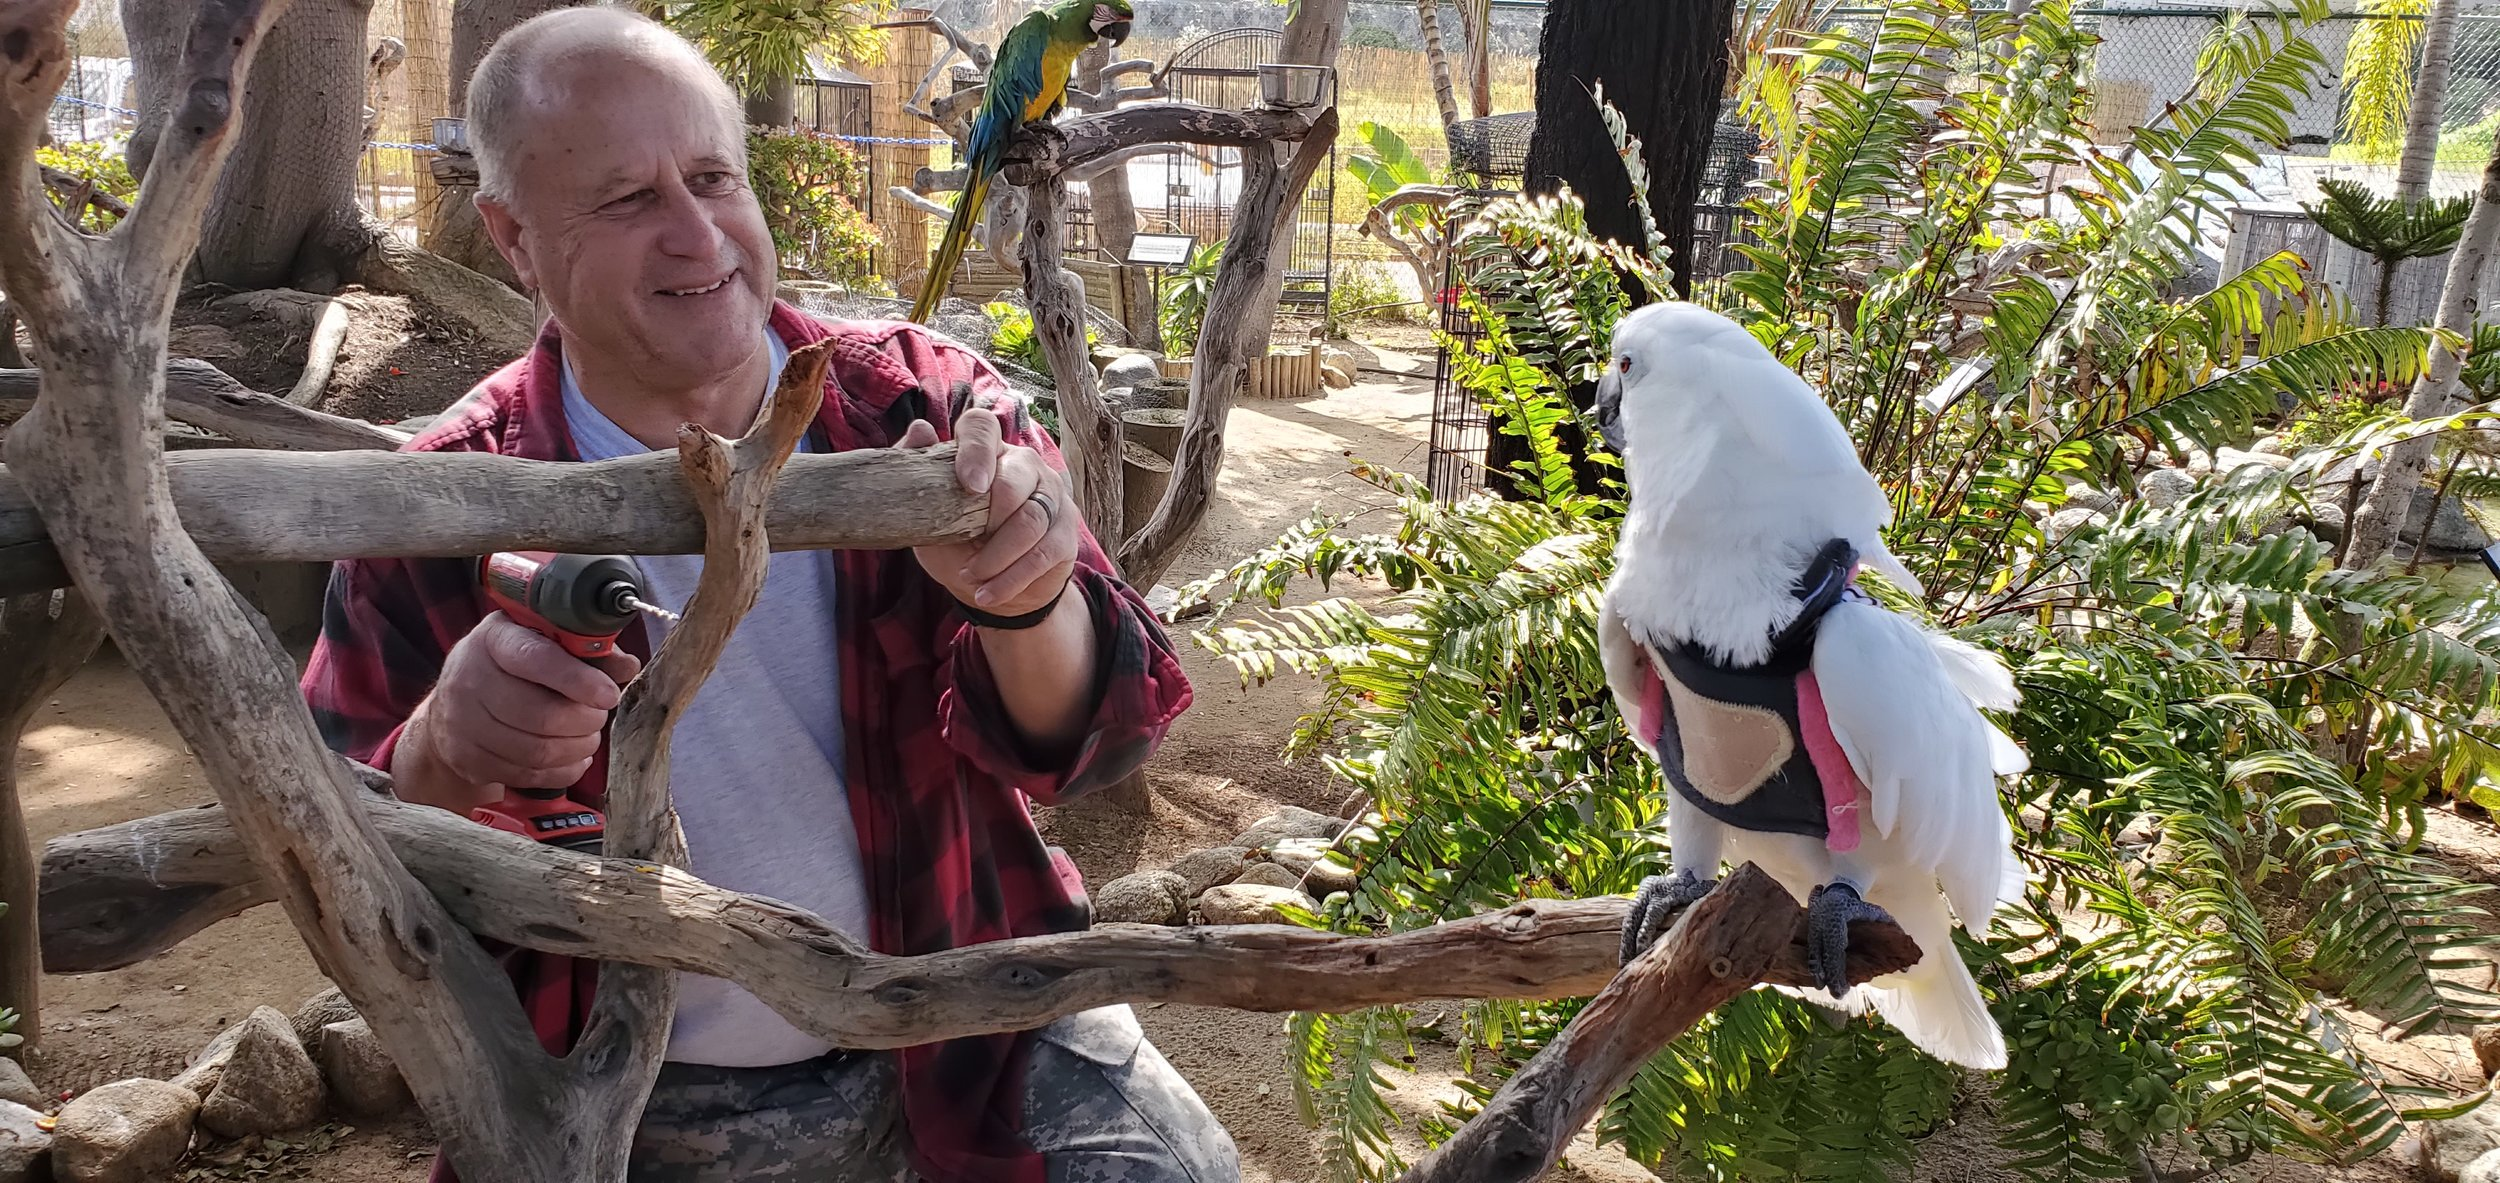 Volunteer Handyman Charlie with his favorite assistant, Casper the Umbrella Cockatoo